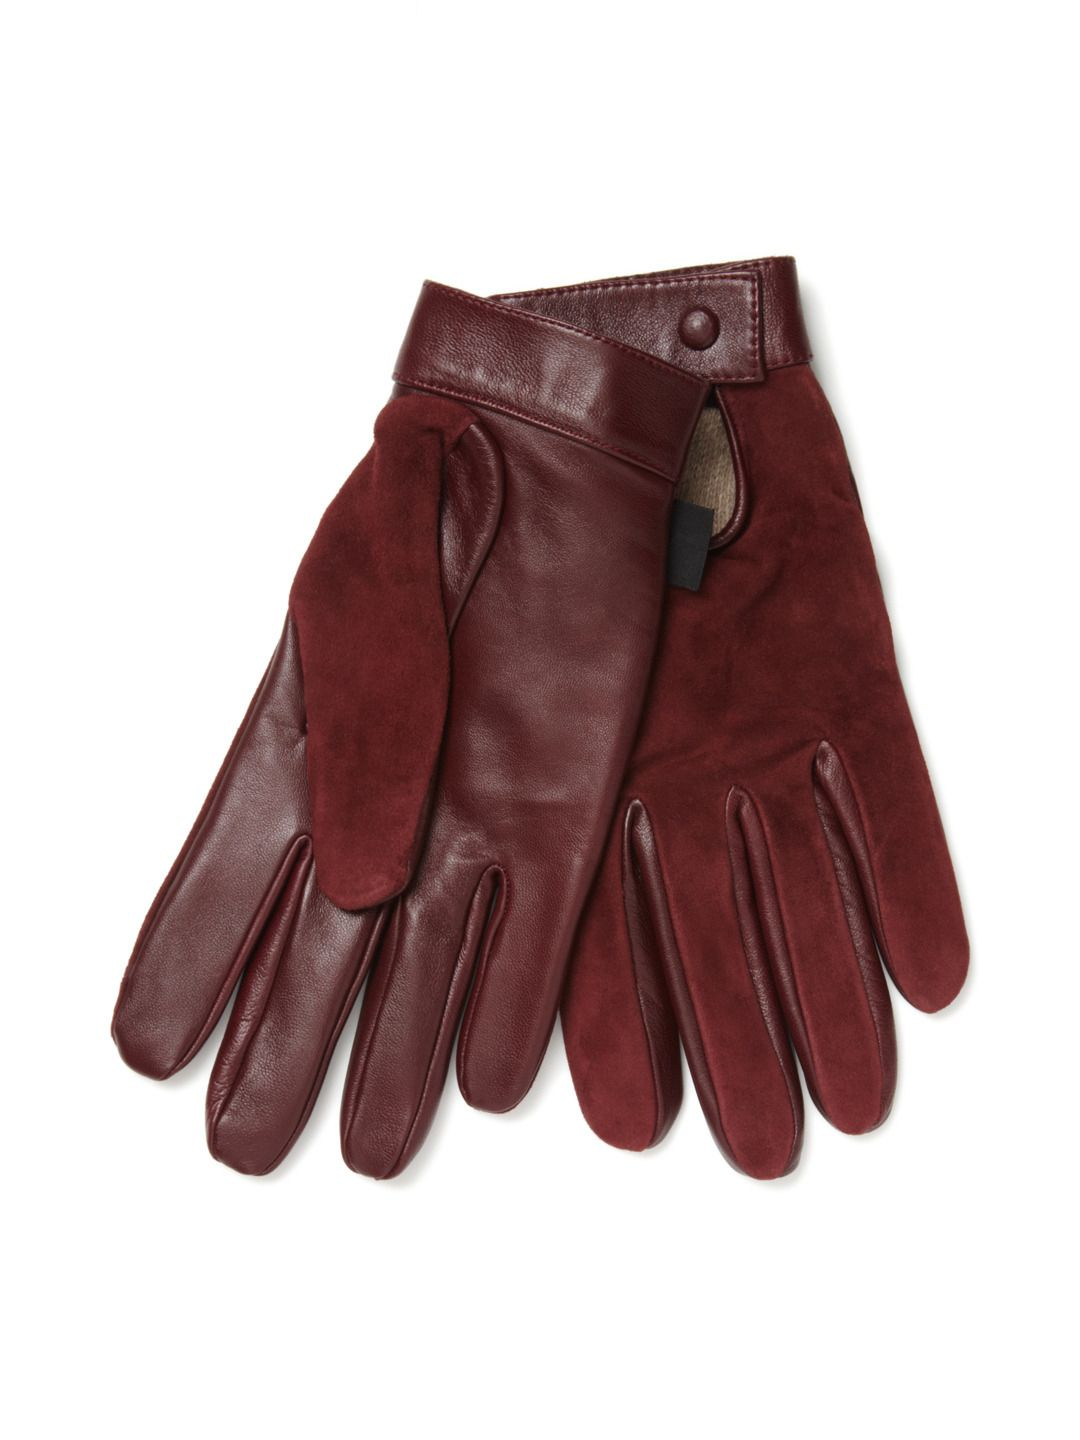 John varvatos leather driving gloves - 10 Best Images About Luvas On Pinterest Retro Motorcycle Men S Leather And Deerskin